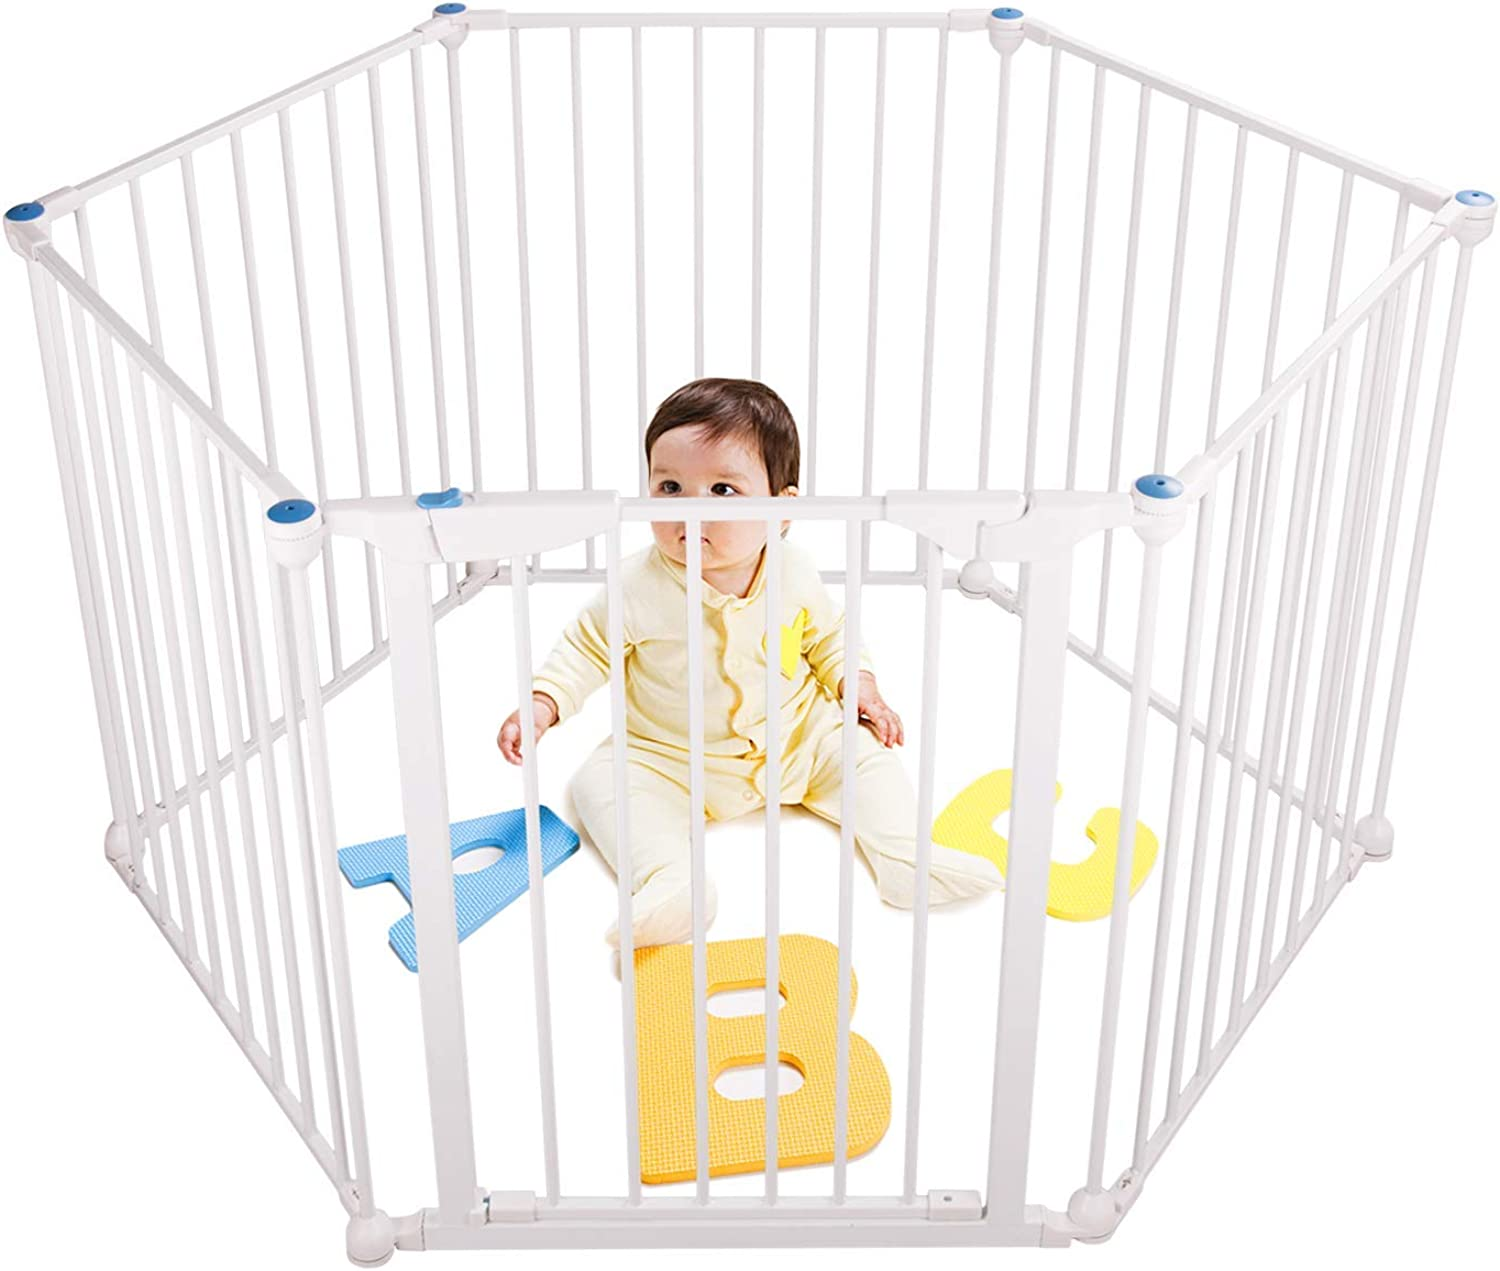 LEVE 150 x30  Baby Pets Playpen 6Panel Safety Play Yard Kids Activity Centre with WalkThrough Gate